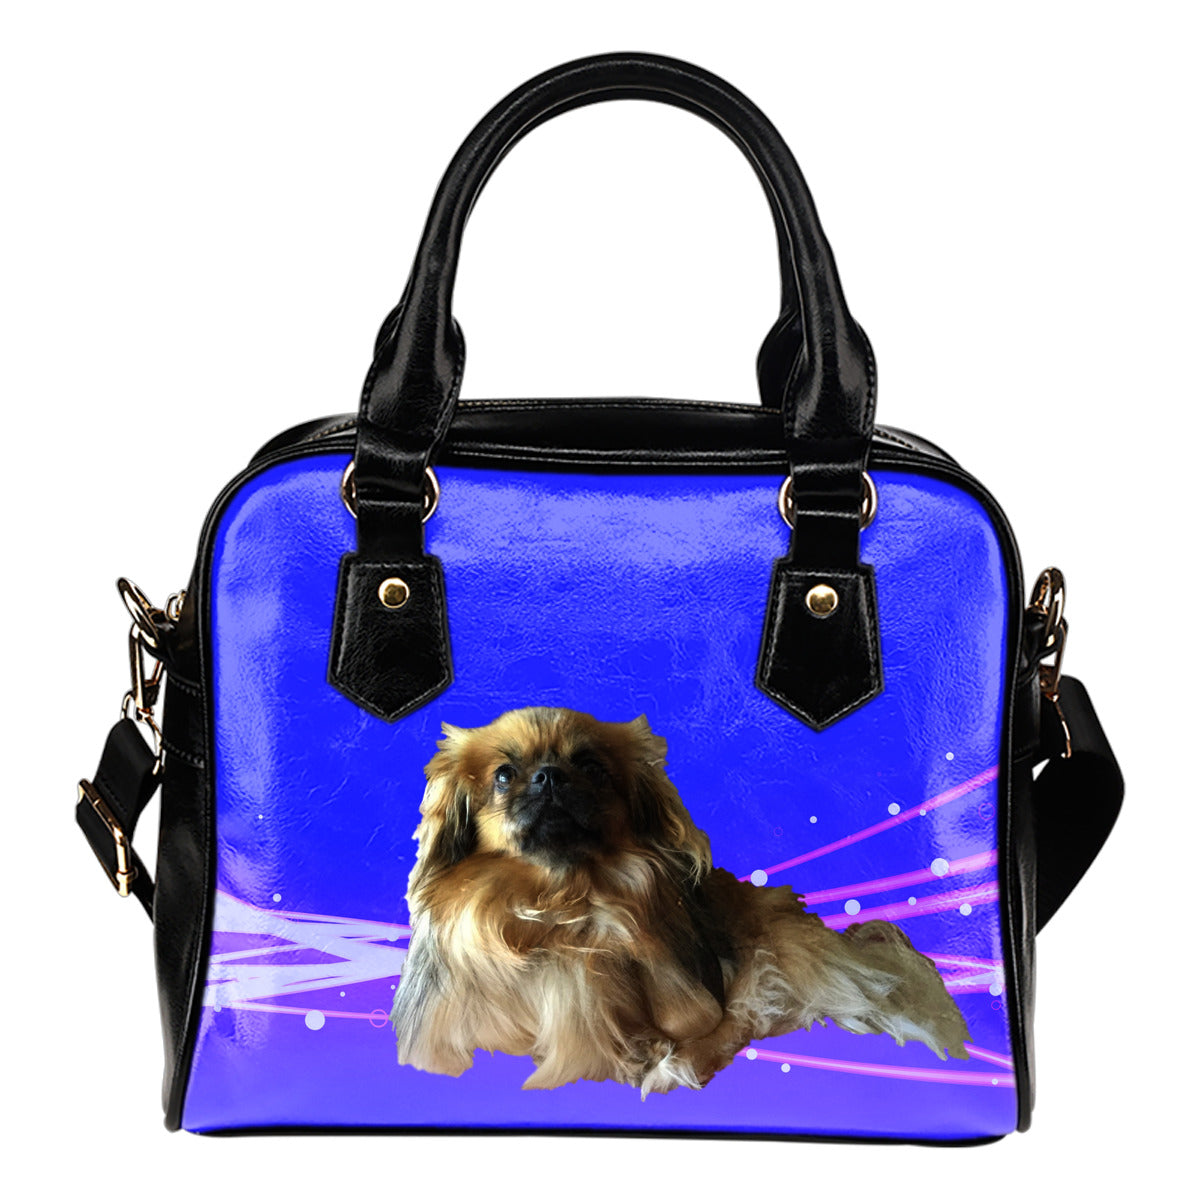 Tibetan Spaniel Shoulder Bag